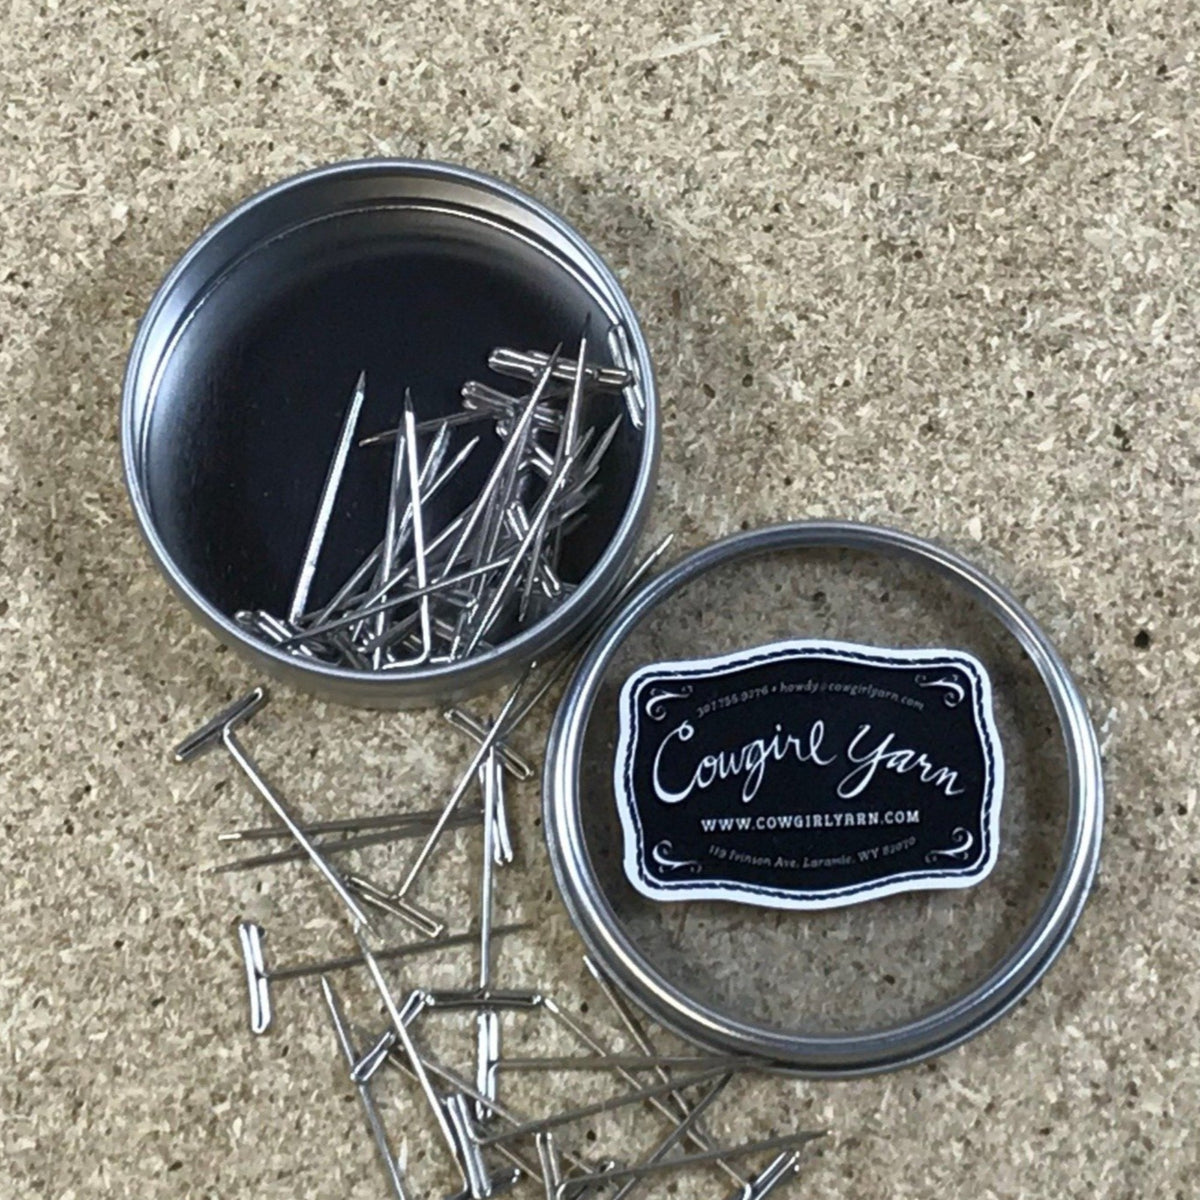 A Cowgirl Yarn branded metal tin filled with stainless steel T pins